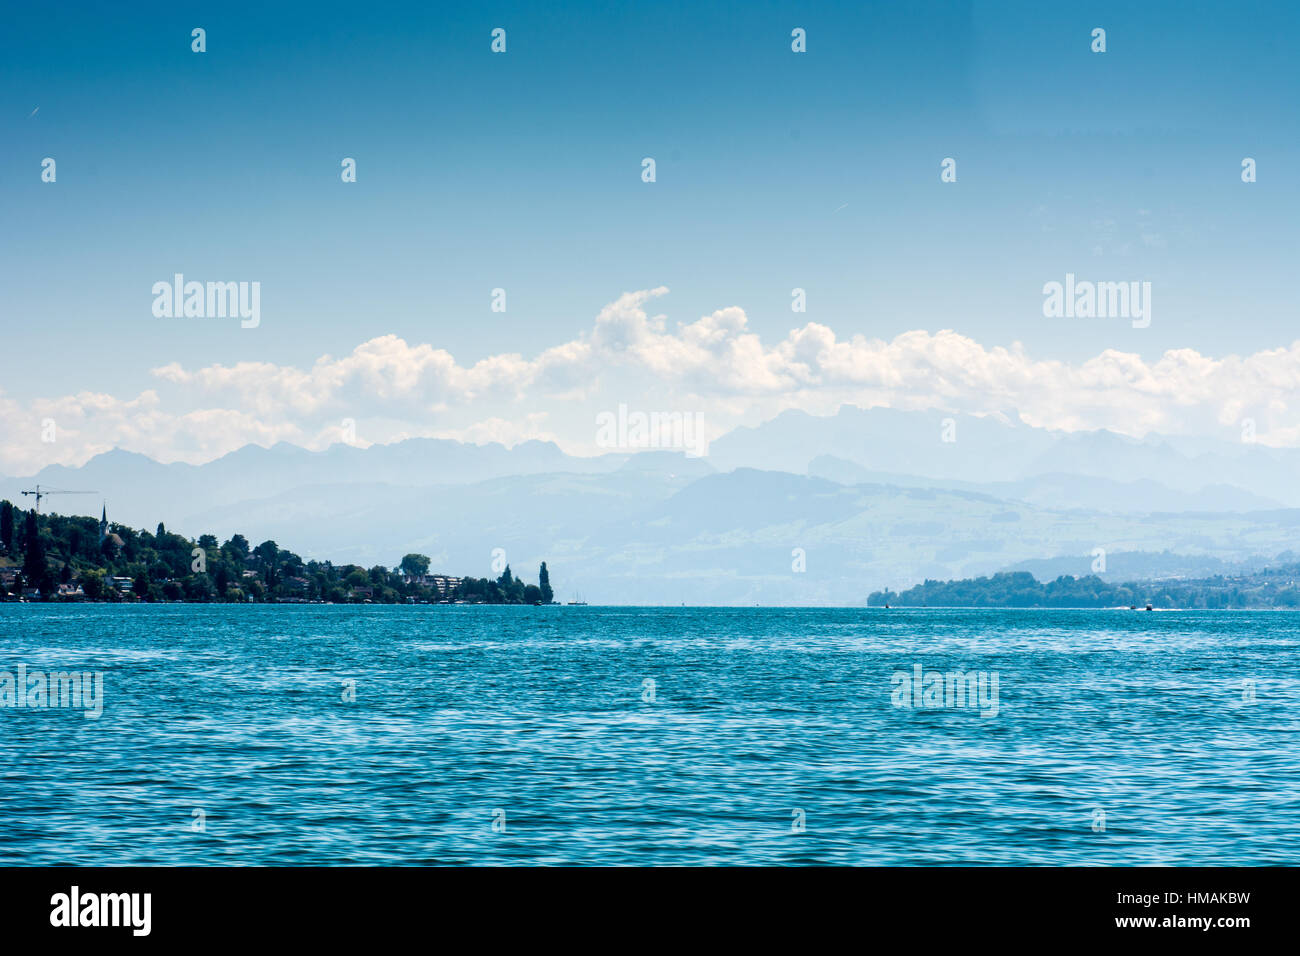 Lake Zurich with alps and blue sky background and landscape - Stock Image